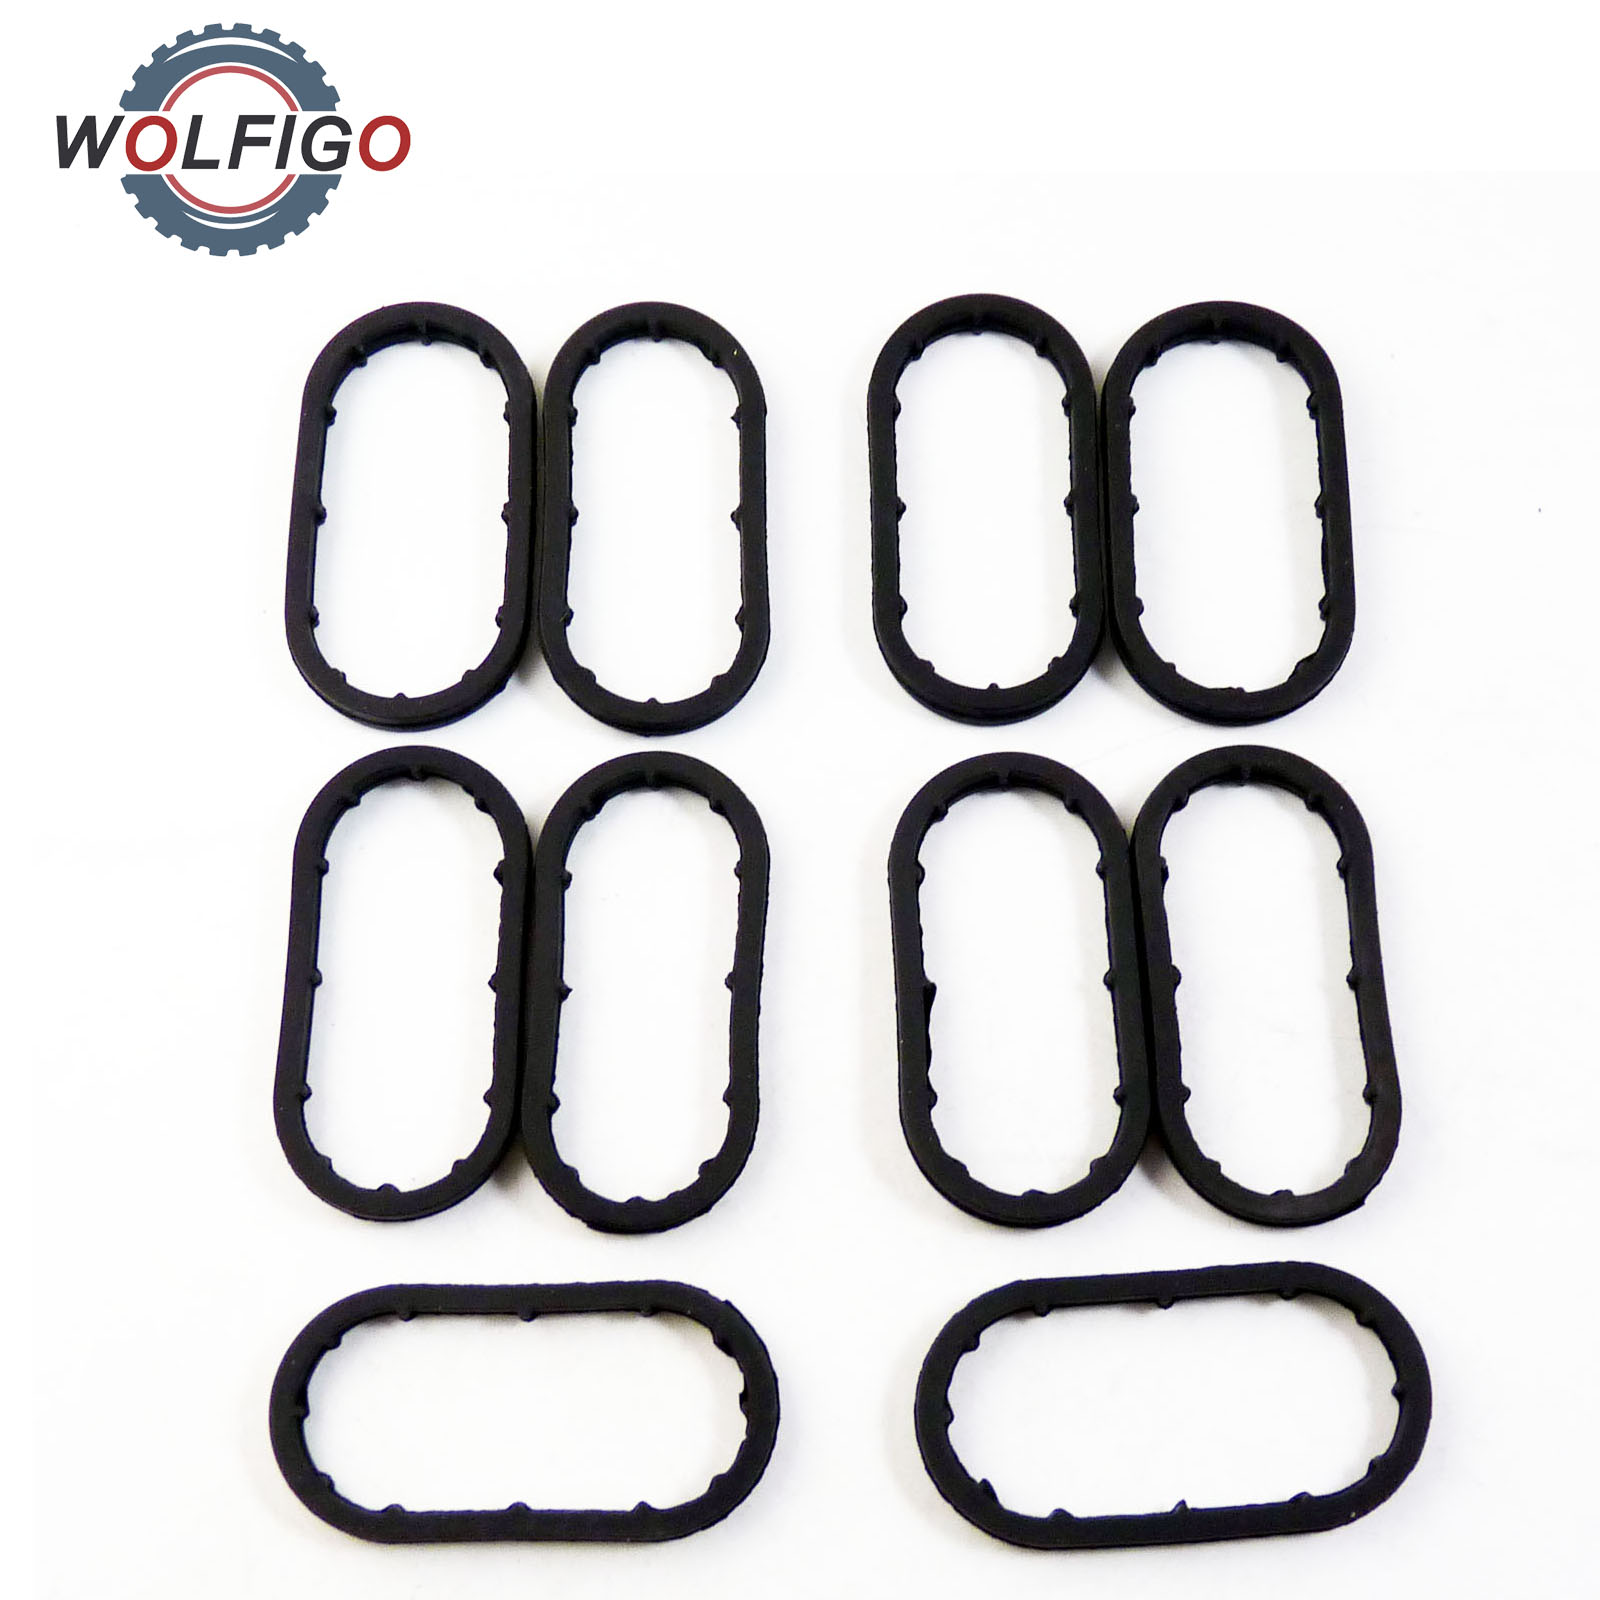 WOLFIGO New Oil Cooler Oil Filter Housing Seal Ring